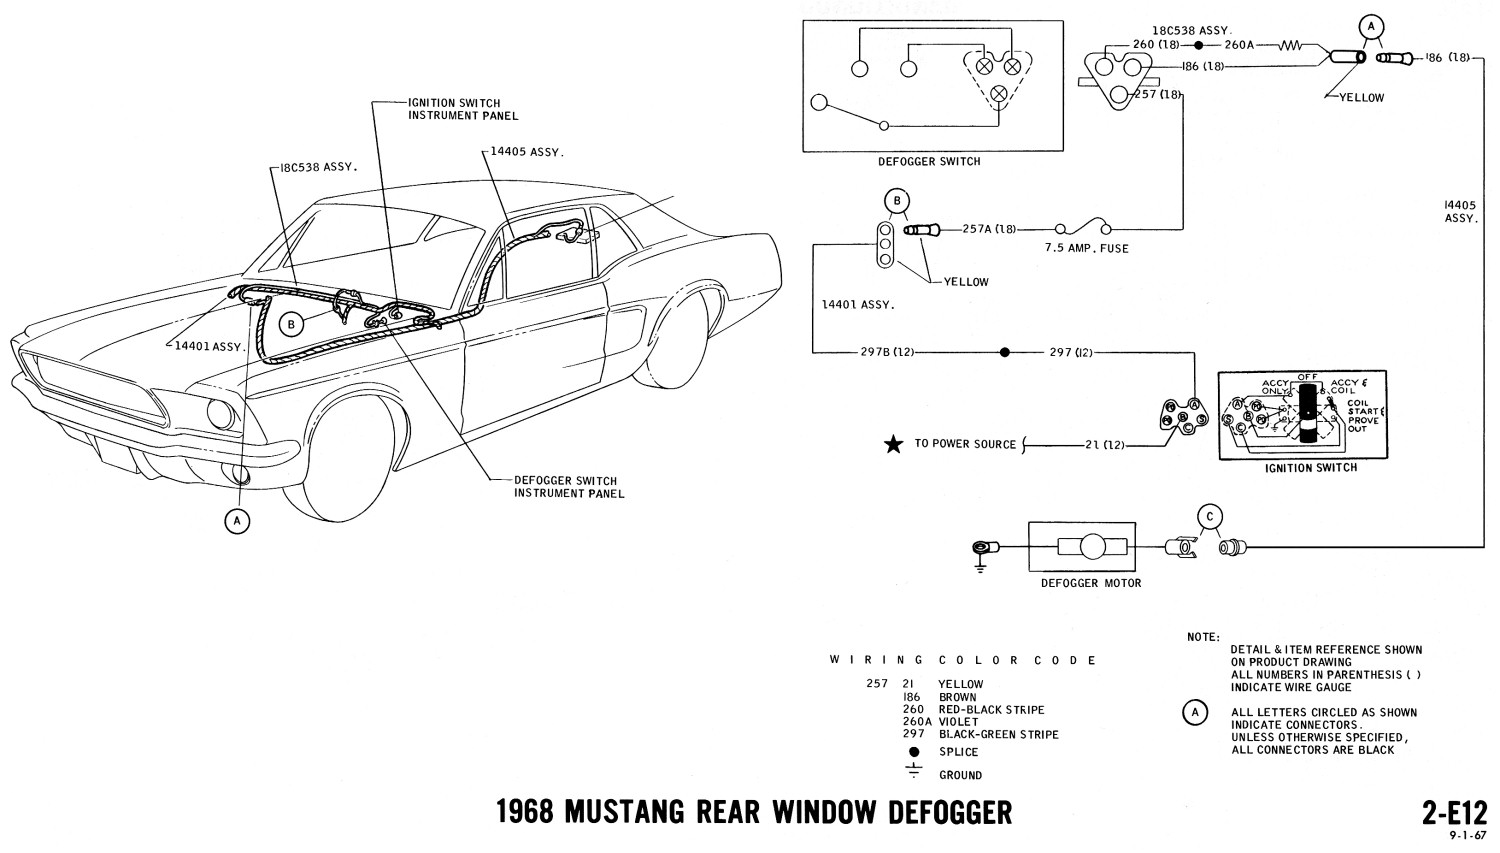 E12 1968 mustang wiring diagrams evolving software t5 transmission wiring diagram at crackthecode.co